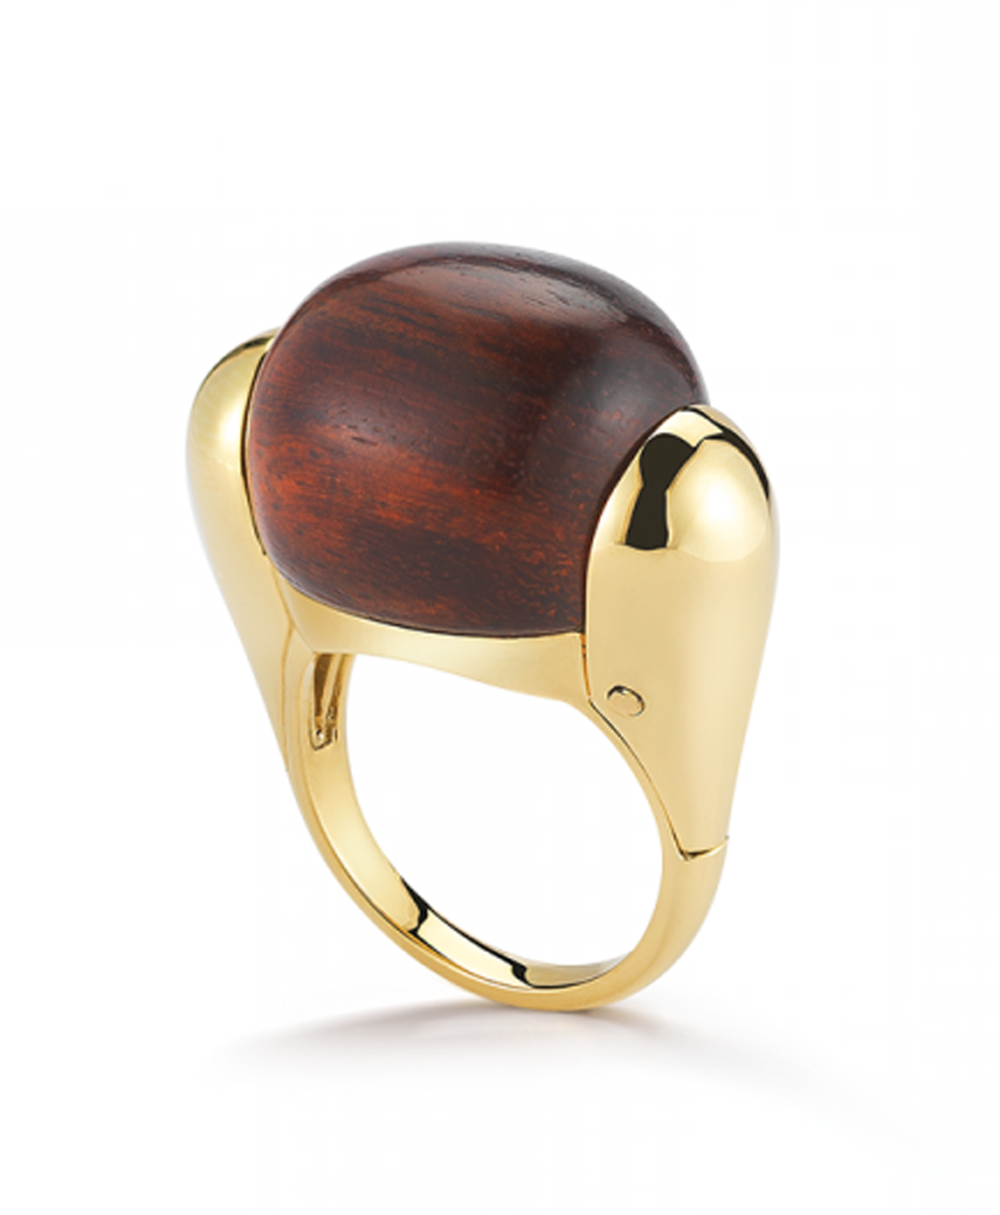 Seaman-ScheppsGolf-Ball-Ring-Rosewood1-570x750.png